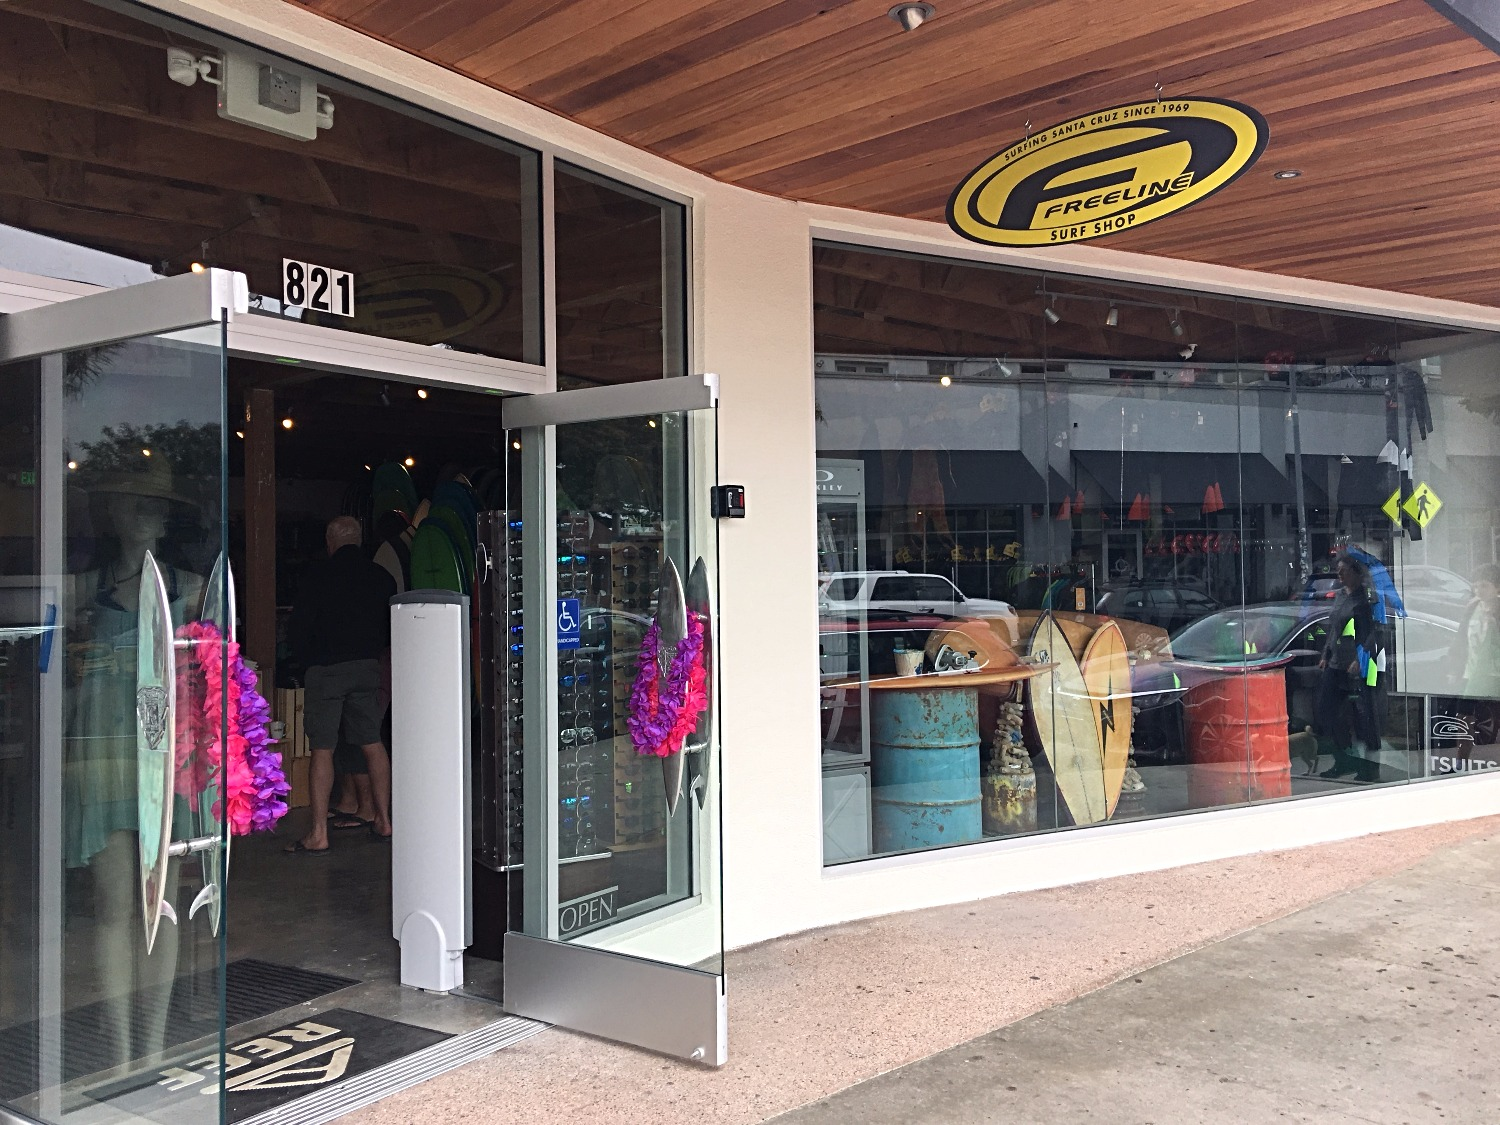 Freeline Surf Shop